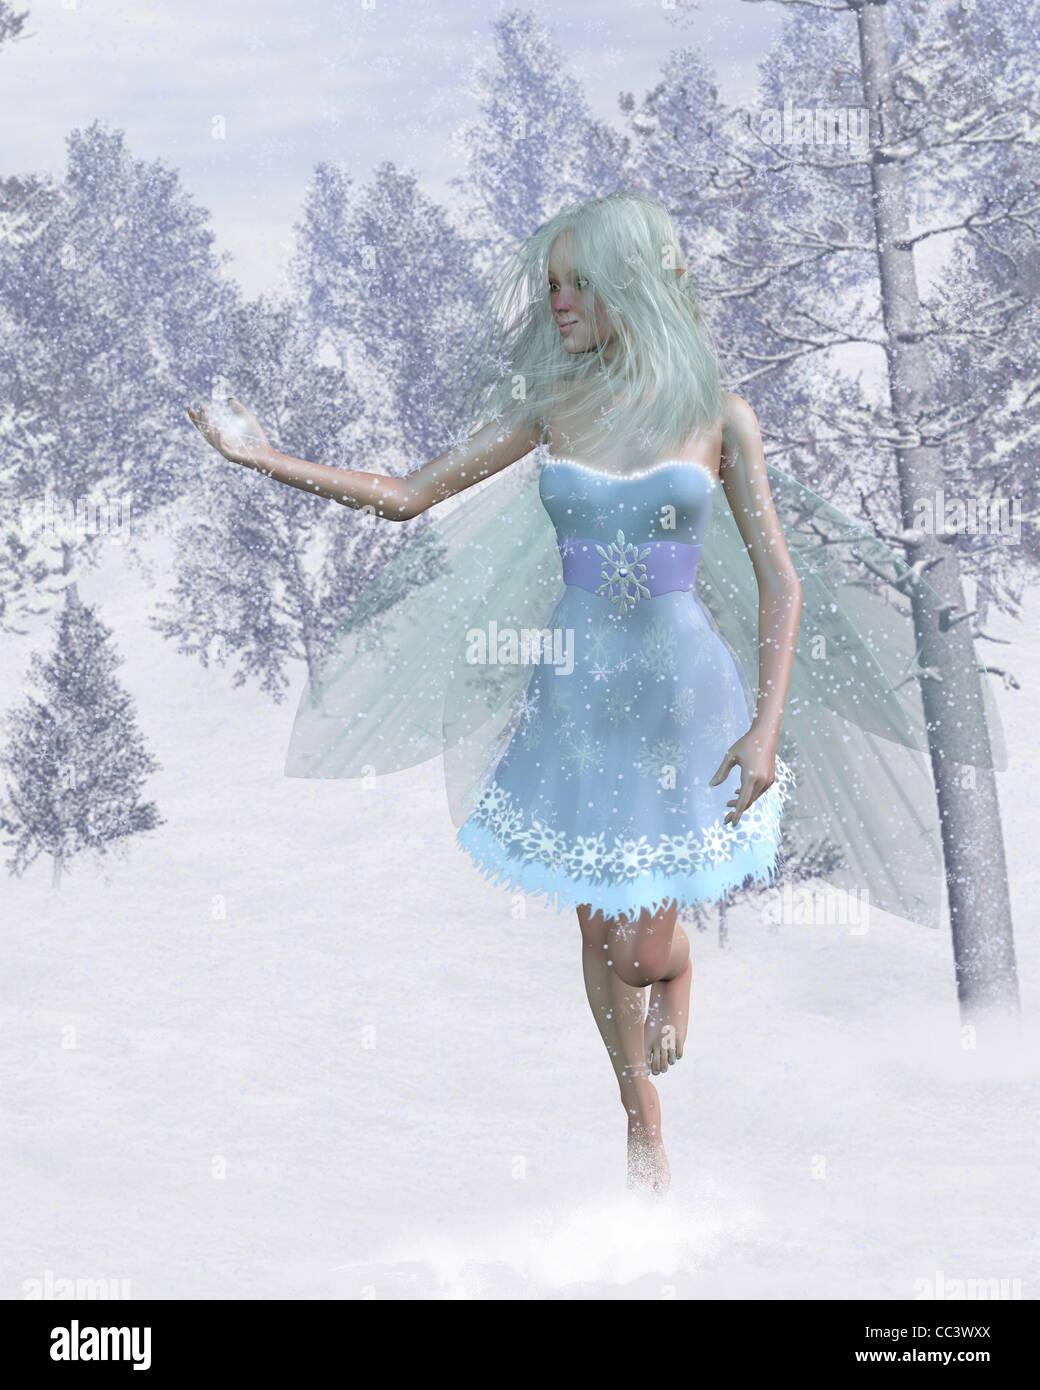 Cold Winter Fairy Catching Snowflakes - Stock Image